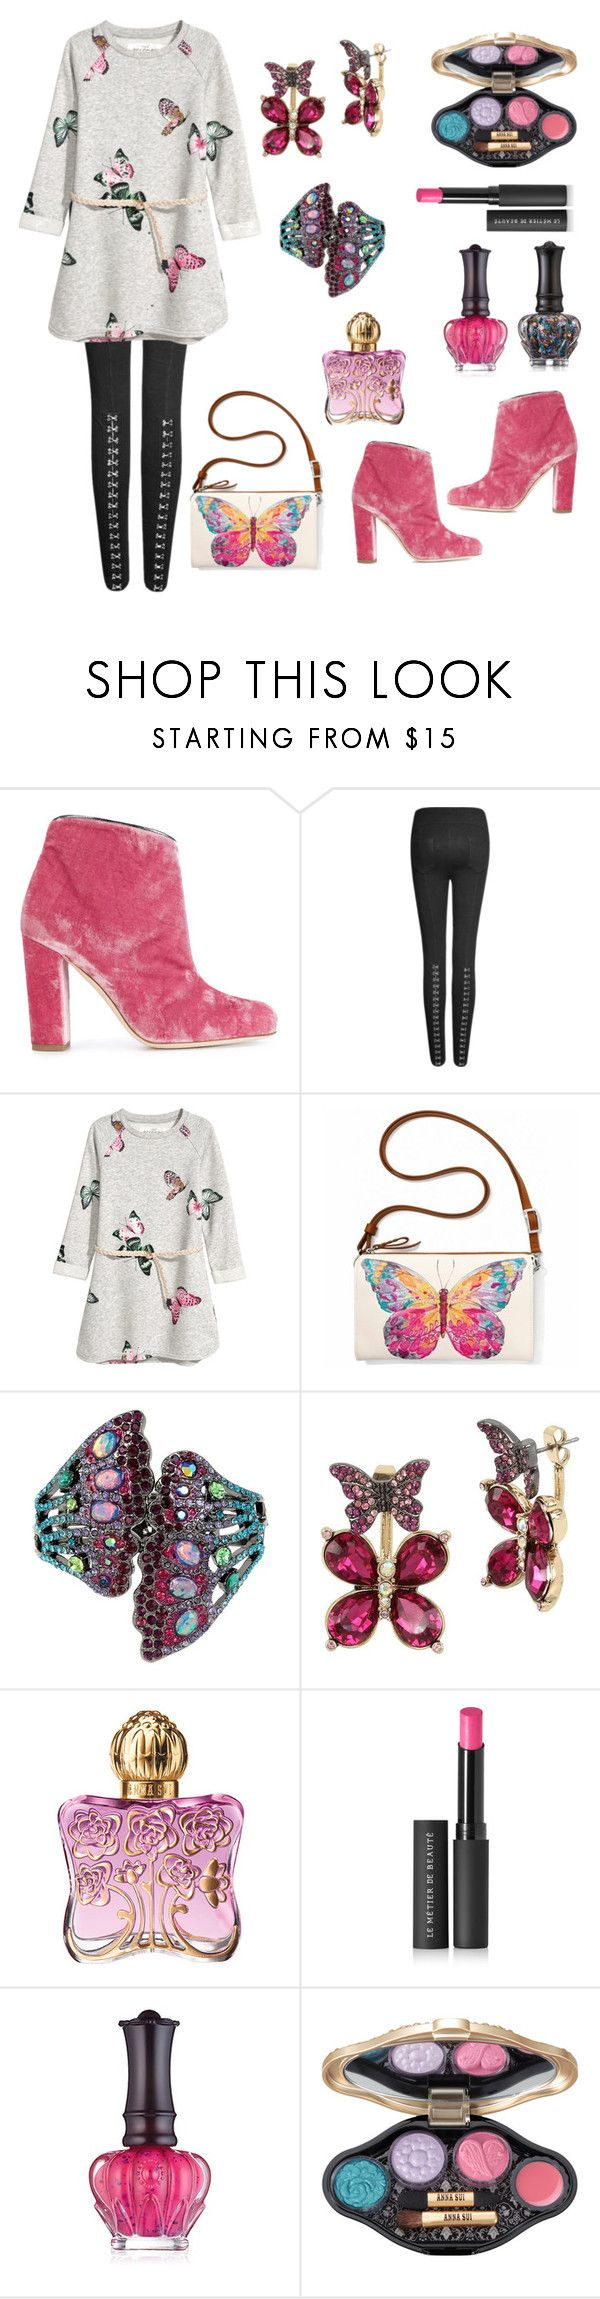 Untitled #904 by siriusfunbysheila1954 on Polyvore featuring Malone Souliers, Brighton, Betsey Johnson, Le Métier de Beauté and Anna Sui